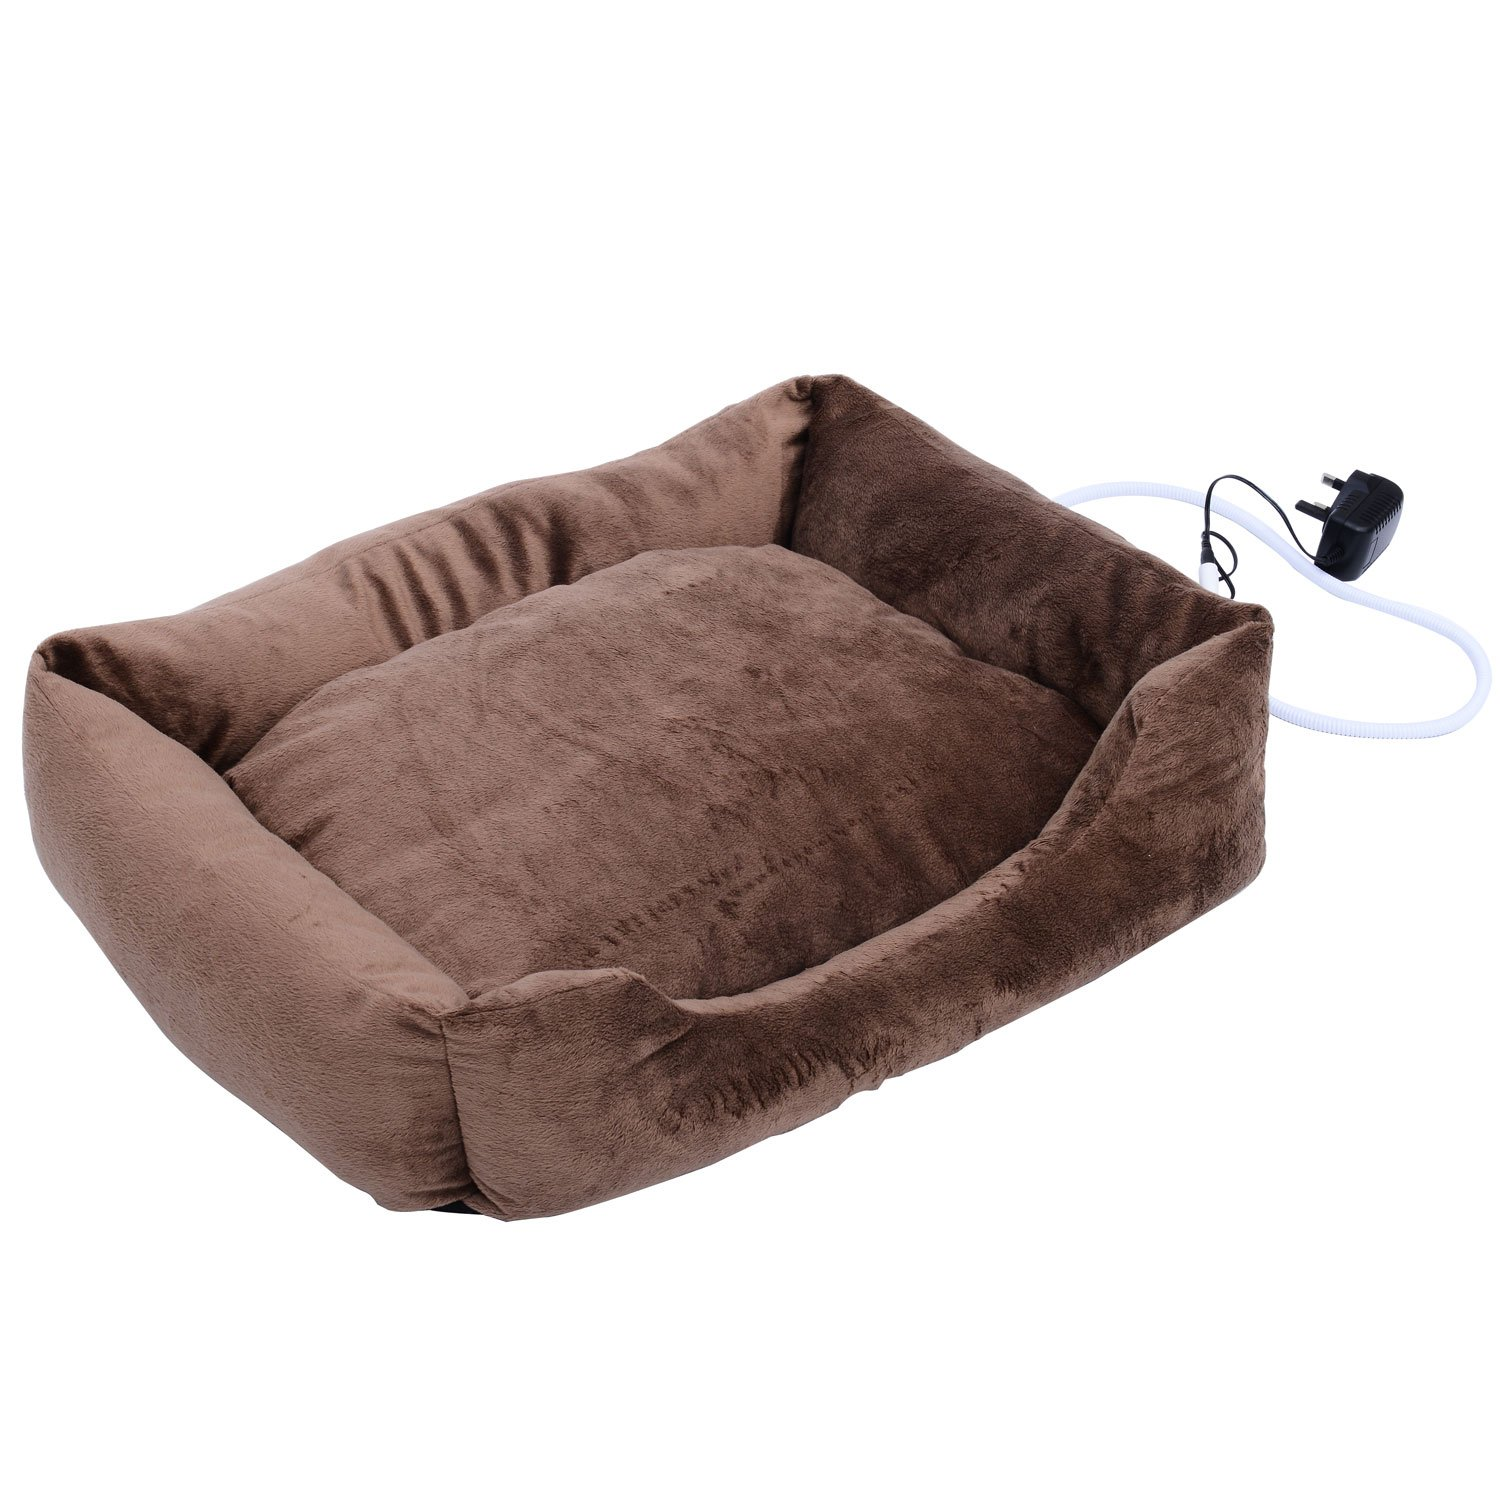 Small Heated Dog Bed